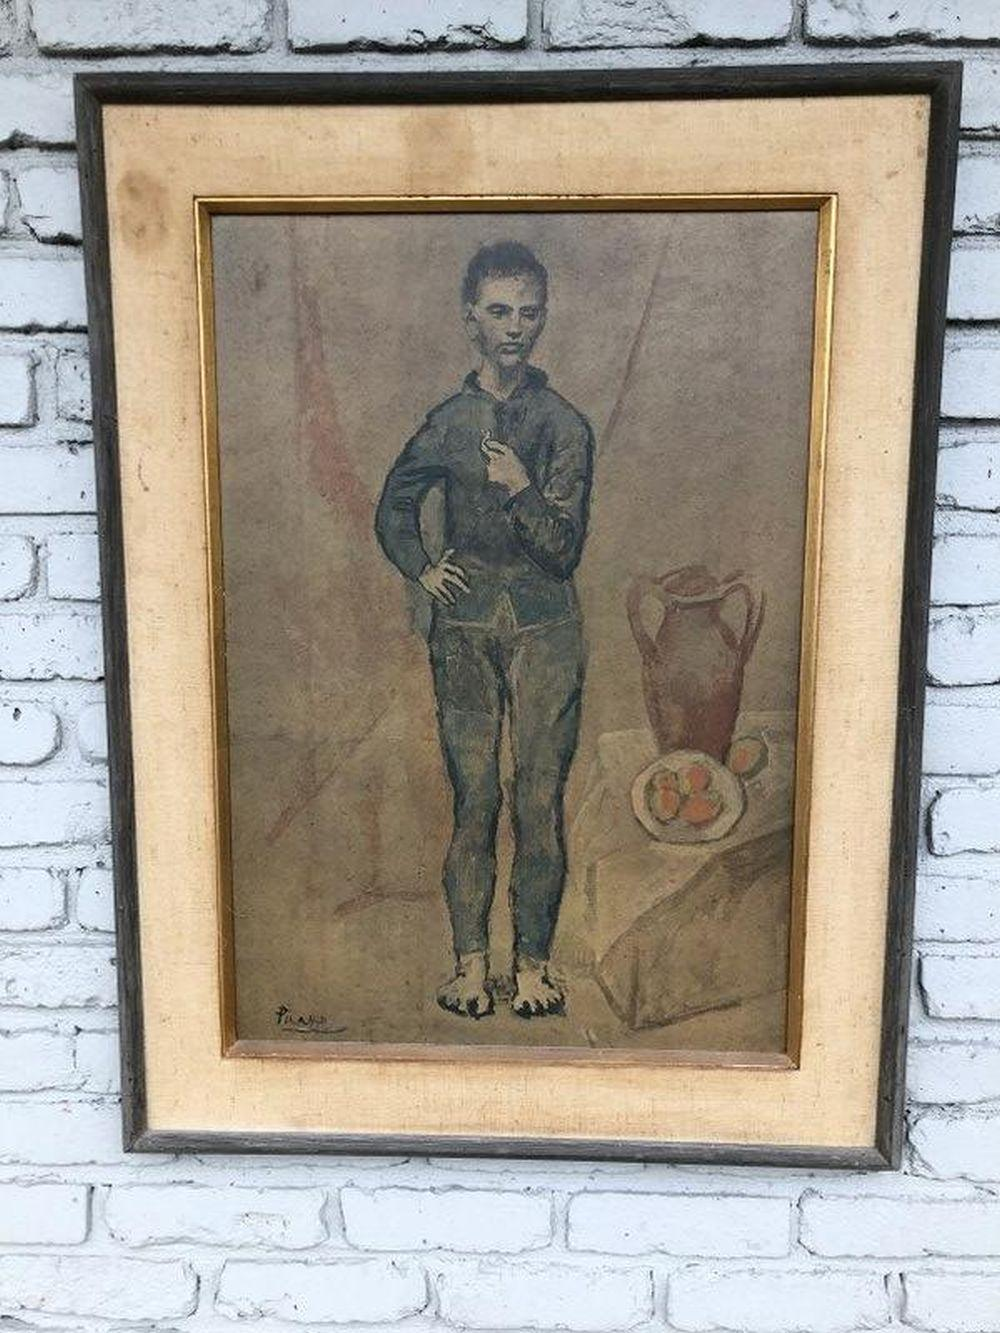 PICASSO MID CENTURY PRINT OF YOUNG MAN IN PERIOD MID